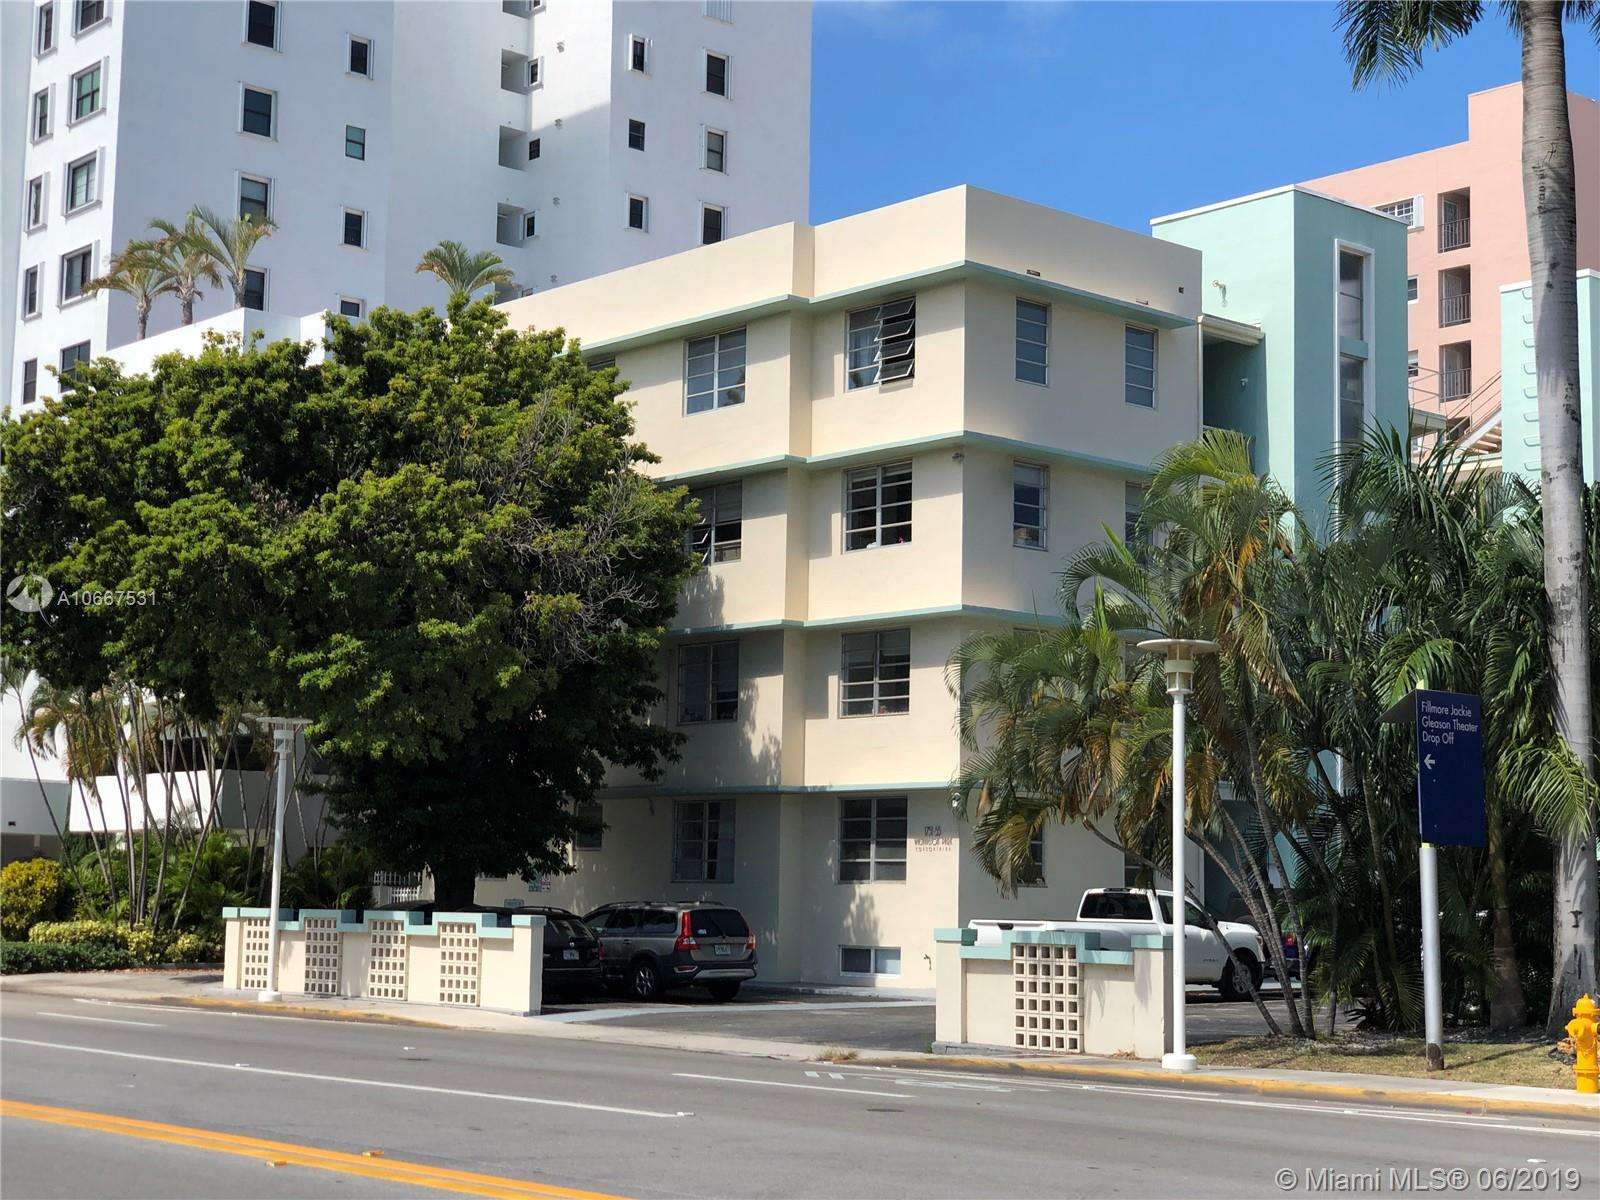 1751 Washington Ave # 4f, Miami, Florida 33139, 1 Bedroom Bedrooms, ,1 BathroomBathrooms,Residential,For Sale,1751 Washington Ave # 4f,A10667531